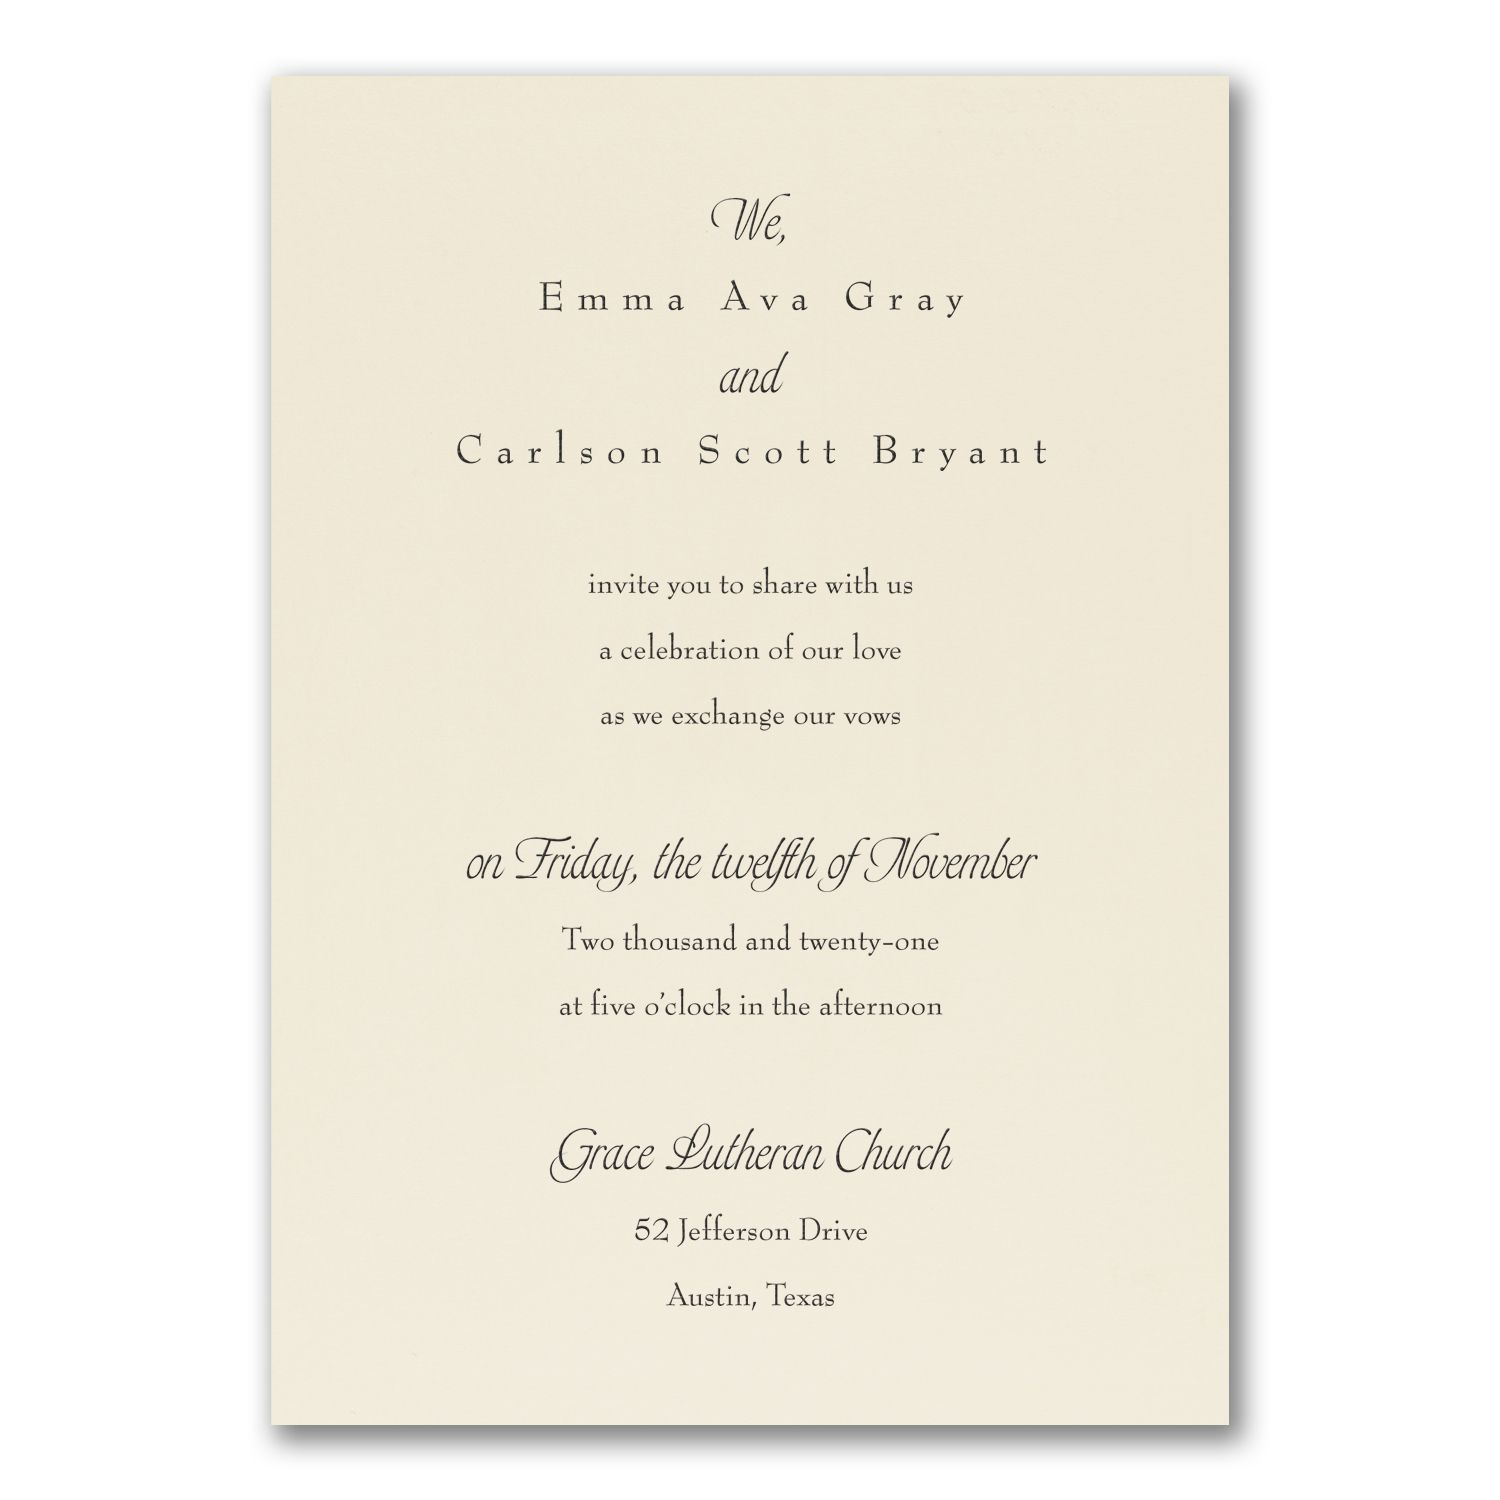 Relaxed Affections Invitation Wedding Invitations Wedding Invitation Prices Invitations